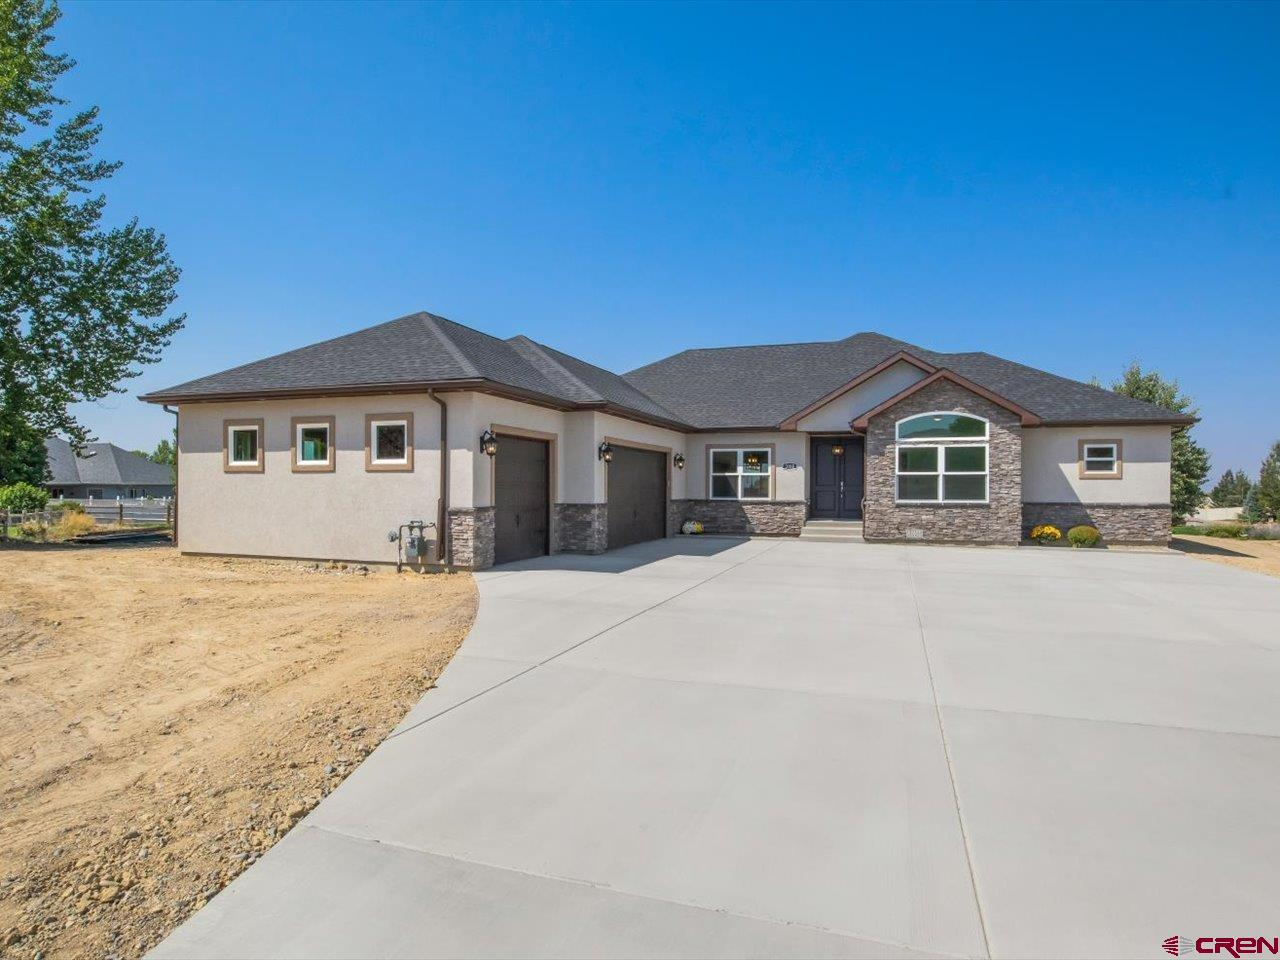 New built home on .5 Acre. End of Cul-De-Sac. Very Private. 3 car attached garage with EGDO, plus remotes and a key pad. 4 Bedrooms, 3 bath, Central Air Conditioning, NGFA heating Frigidaire. Open living area. Kitchen with breakfast bar for 5 chairs. Great M. Bedroom and full bath. Large walk-in closet. Plenty of room for a additional garage or  shop. Nice Covered Patio. Must See. Hook up for dryer electric/gas and same for range and oven. Current Range/Oven is electric. Taxes for 2021 are Land Only. To be reassessed later this year for land and residence.